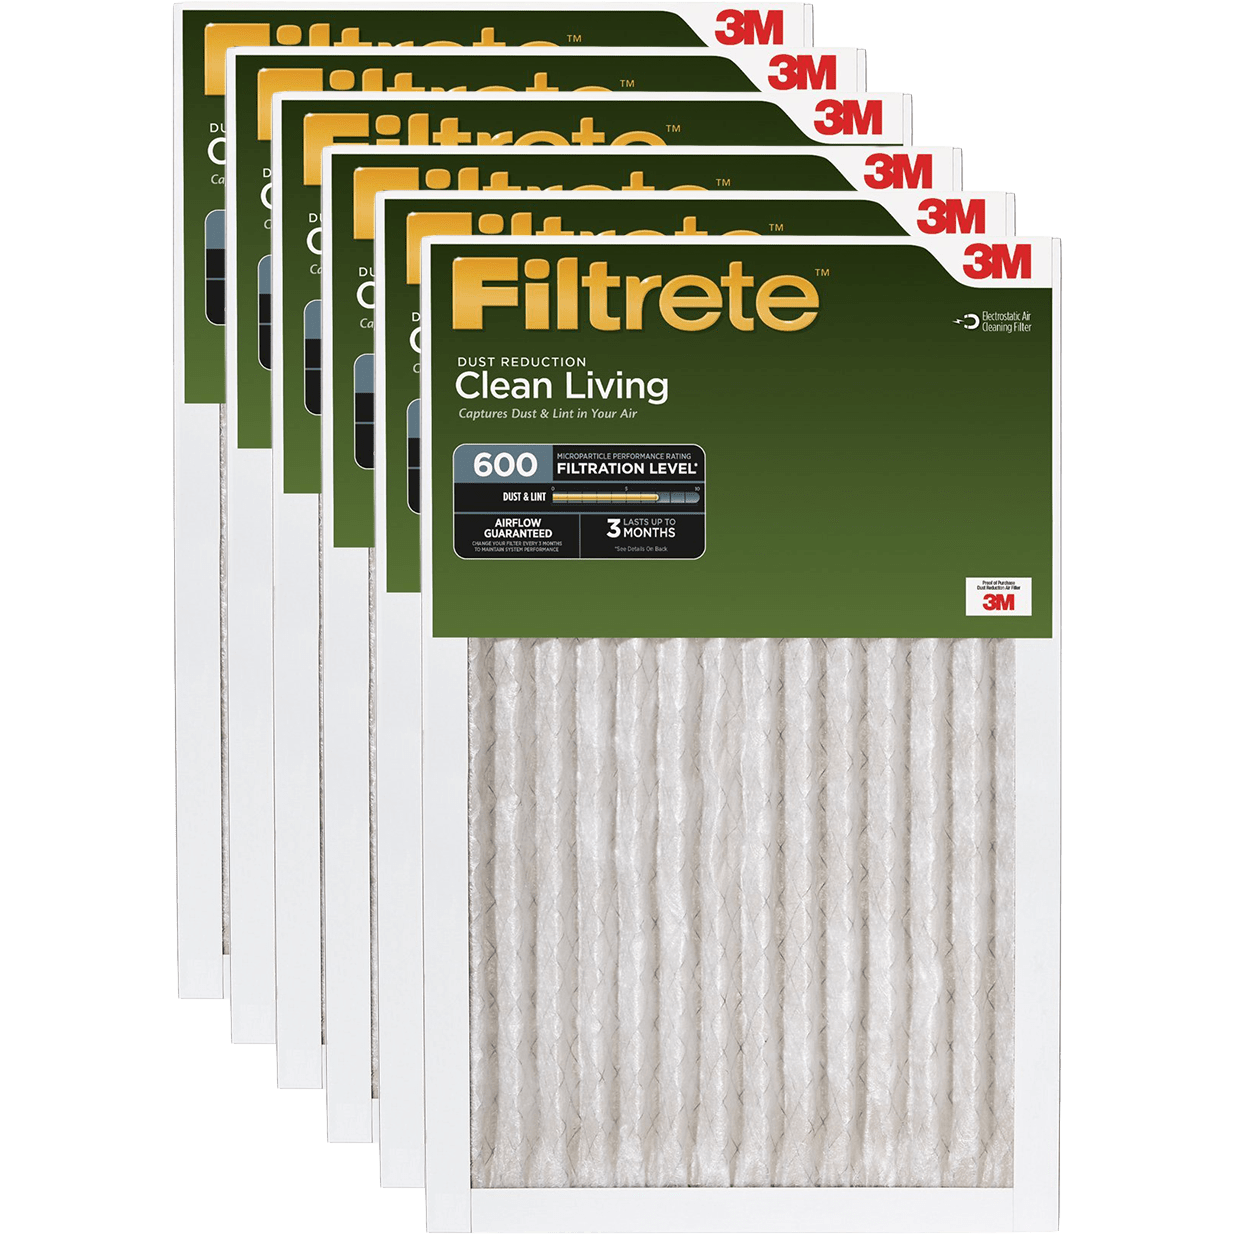 3M Filtrete Clean Living Dust Reduction MPR 600 Air Filters, 1-Inch 6-Pack fi5330